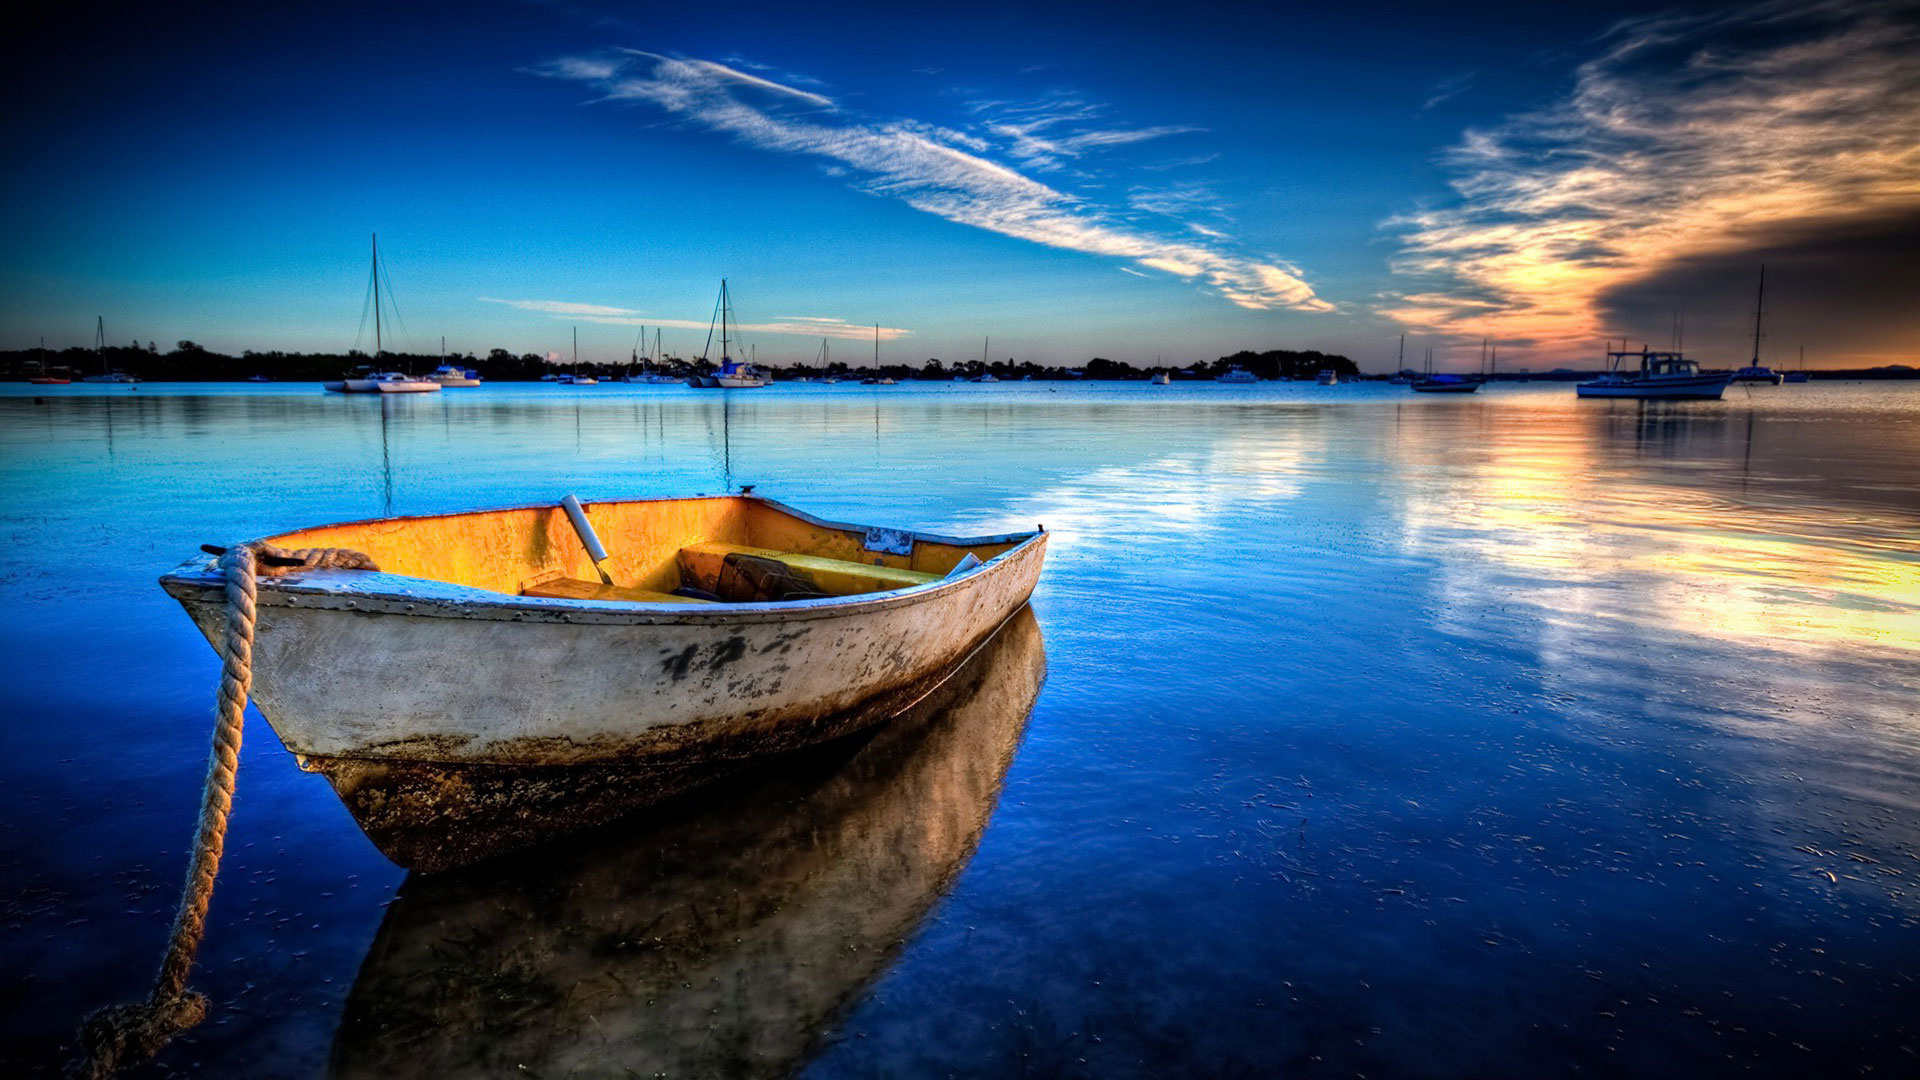 Boat-High-Quality-HD-Widescreen-Images-HD-Widescreen-wallpaper-wp3603621